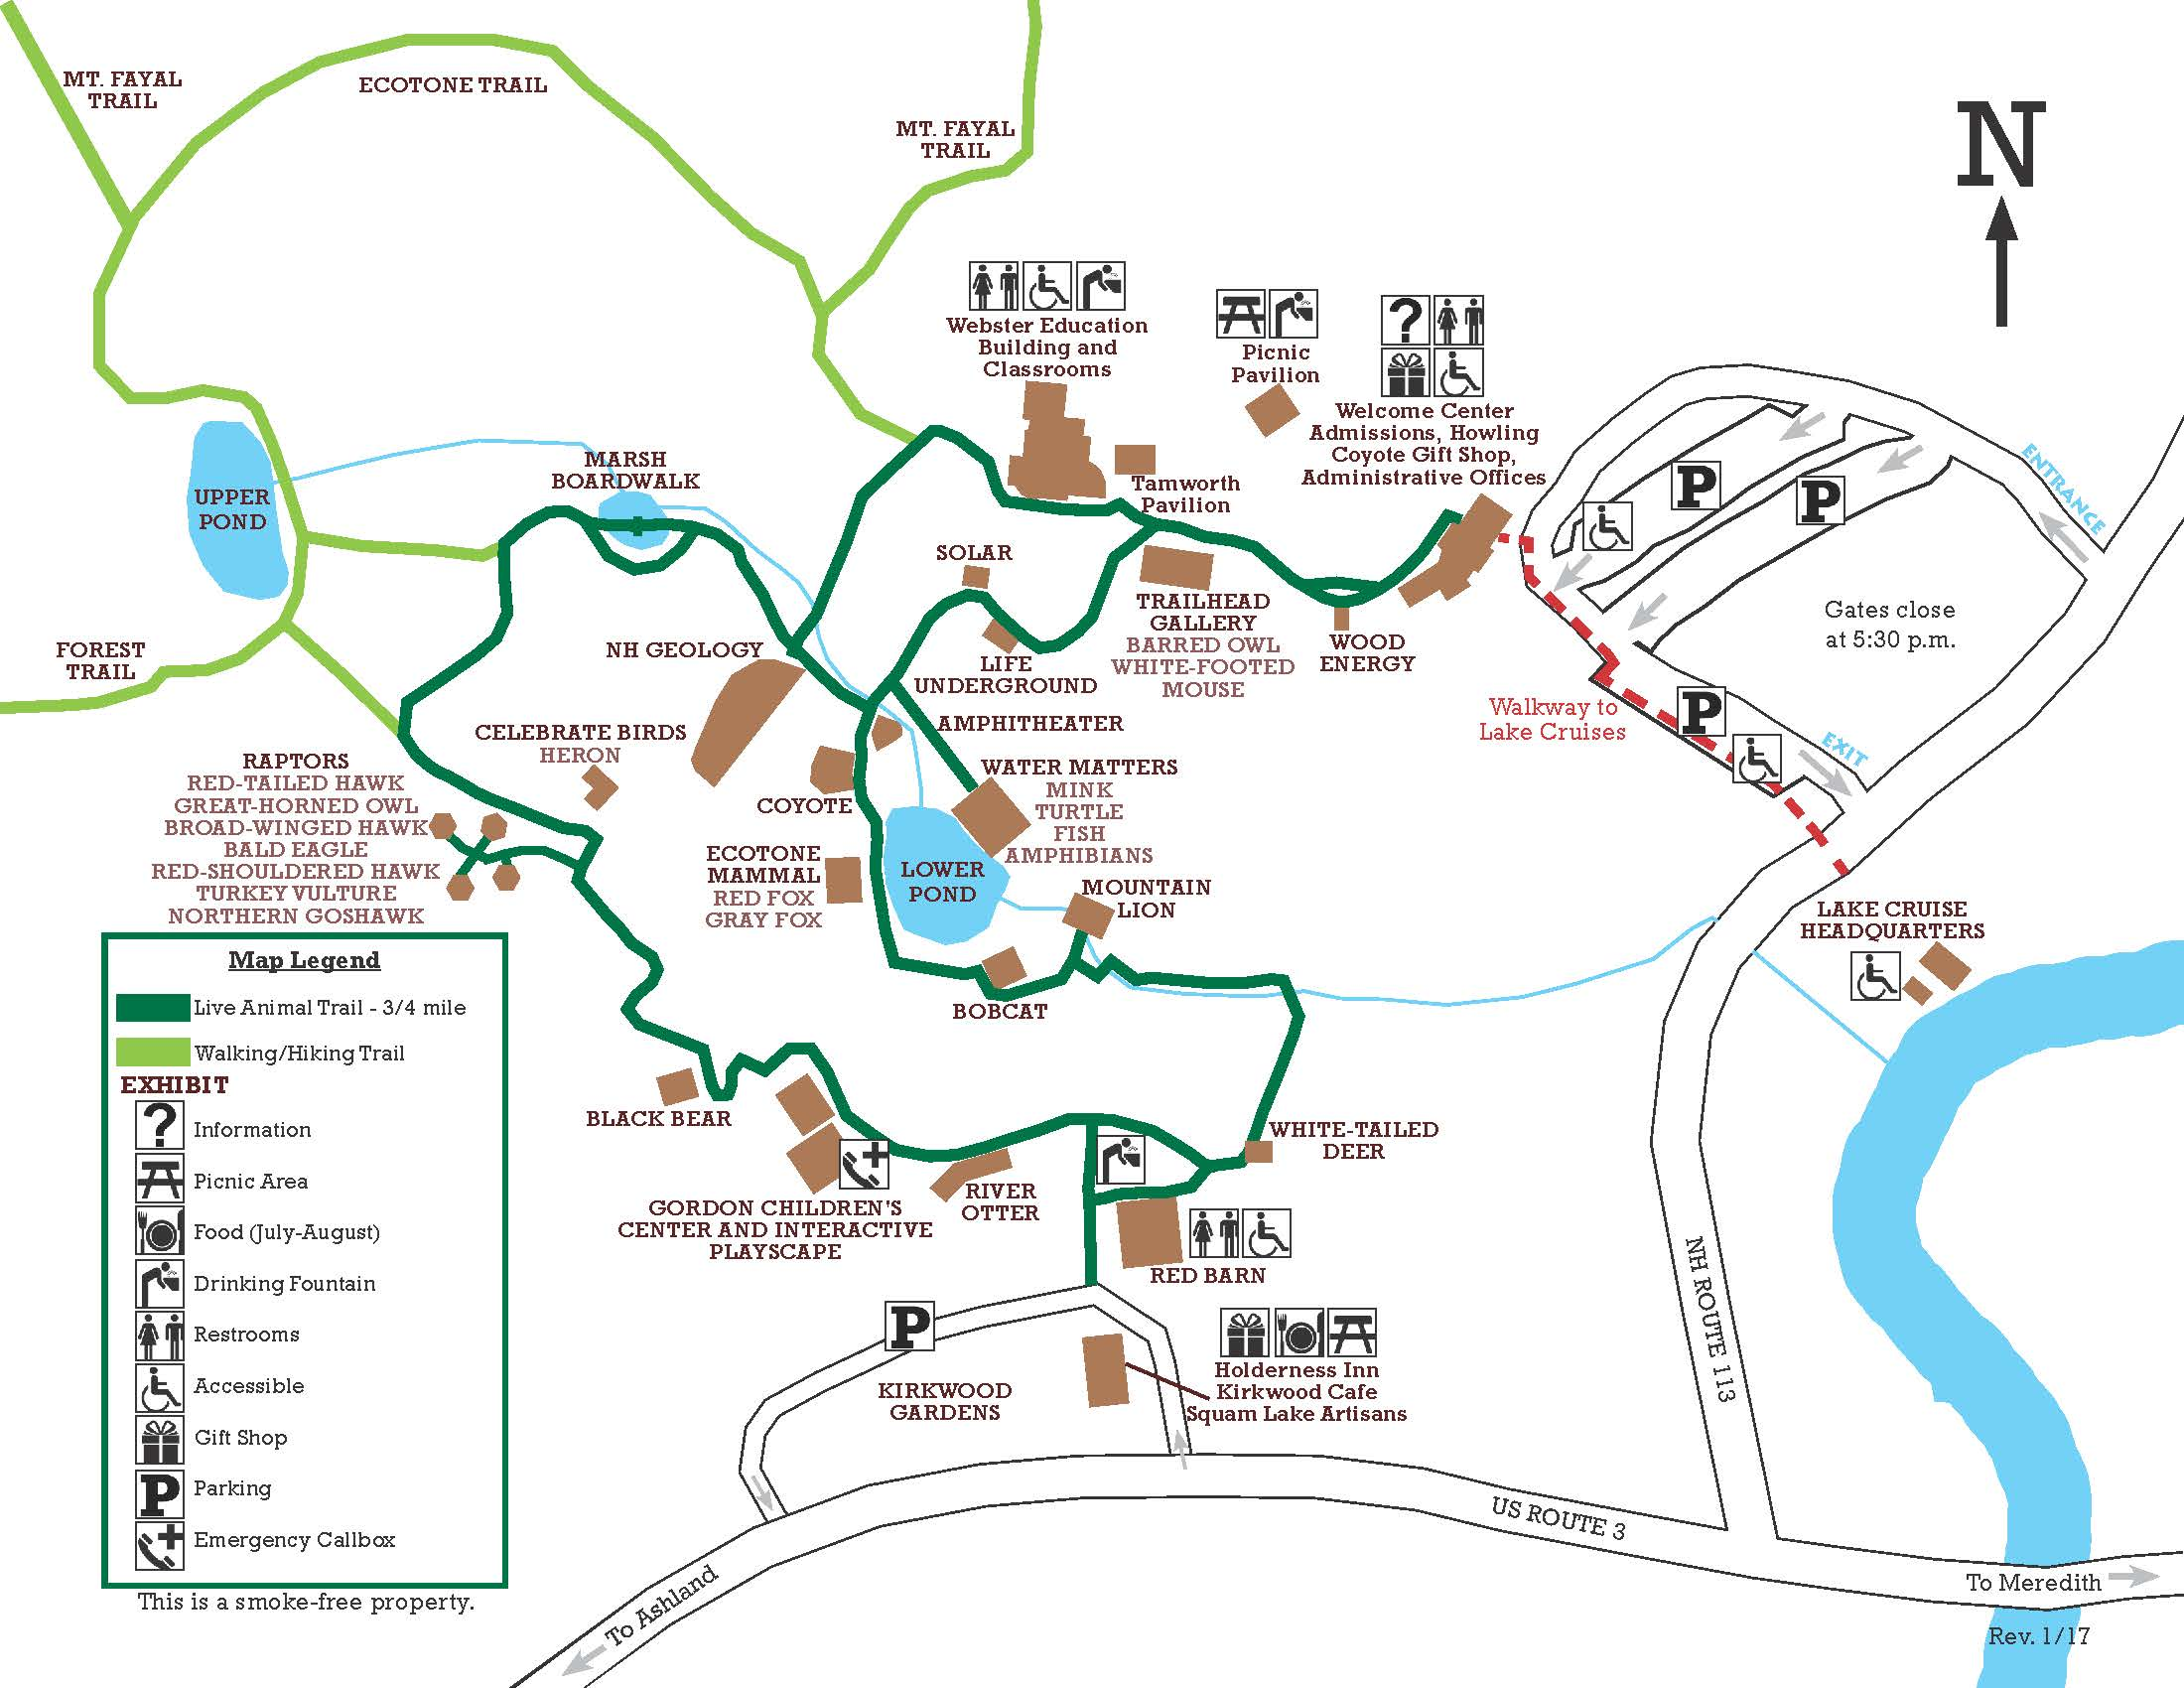 Animal exhibits and trails squam lakes natural science center click map for larger version gumiabroncs Image collections